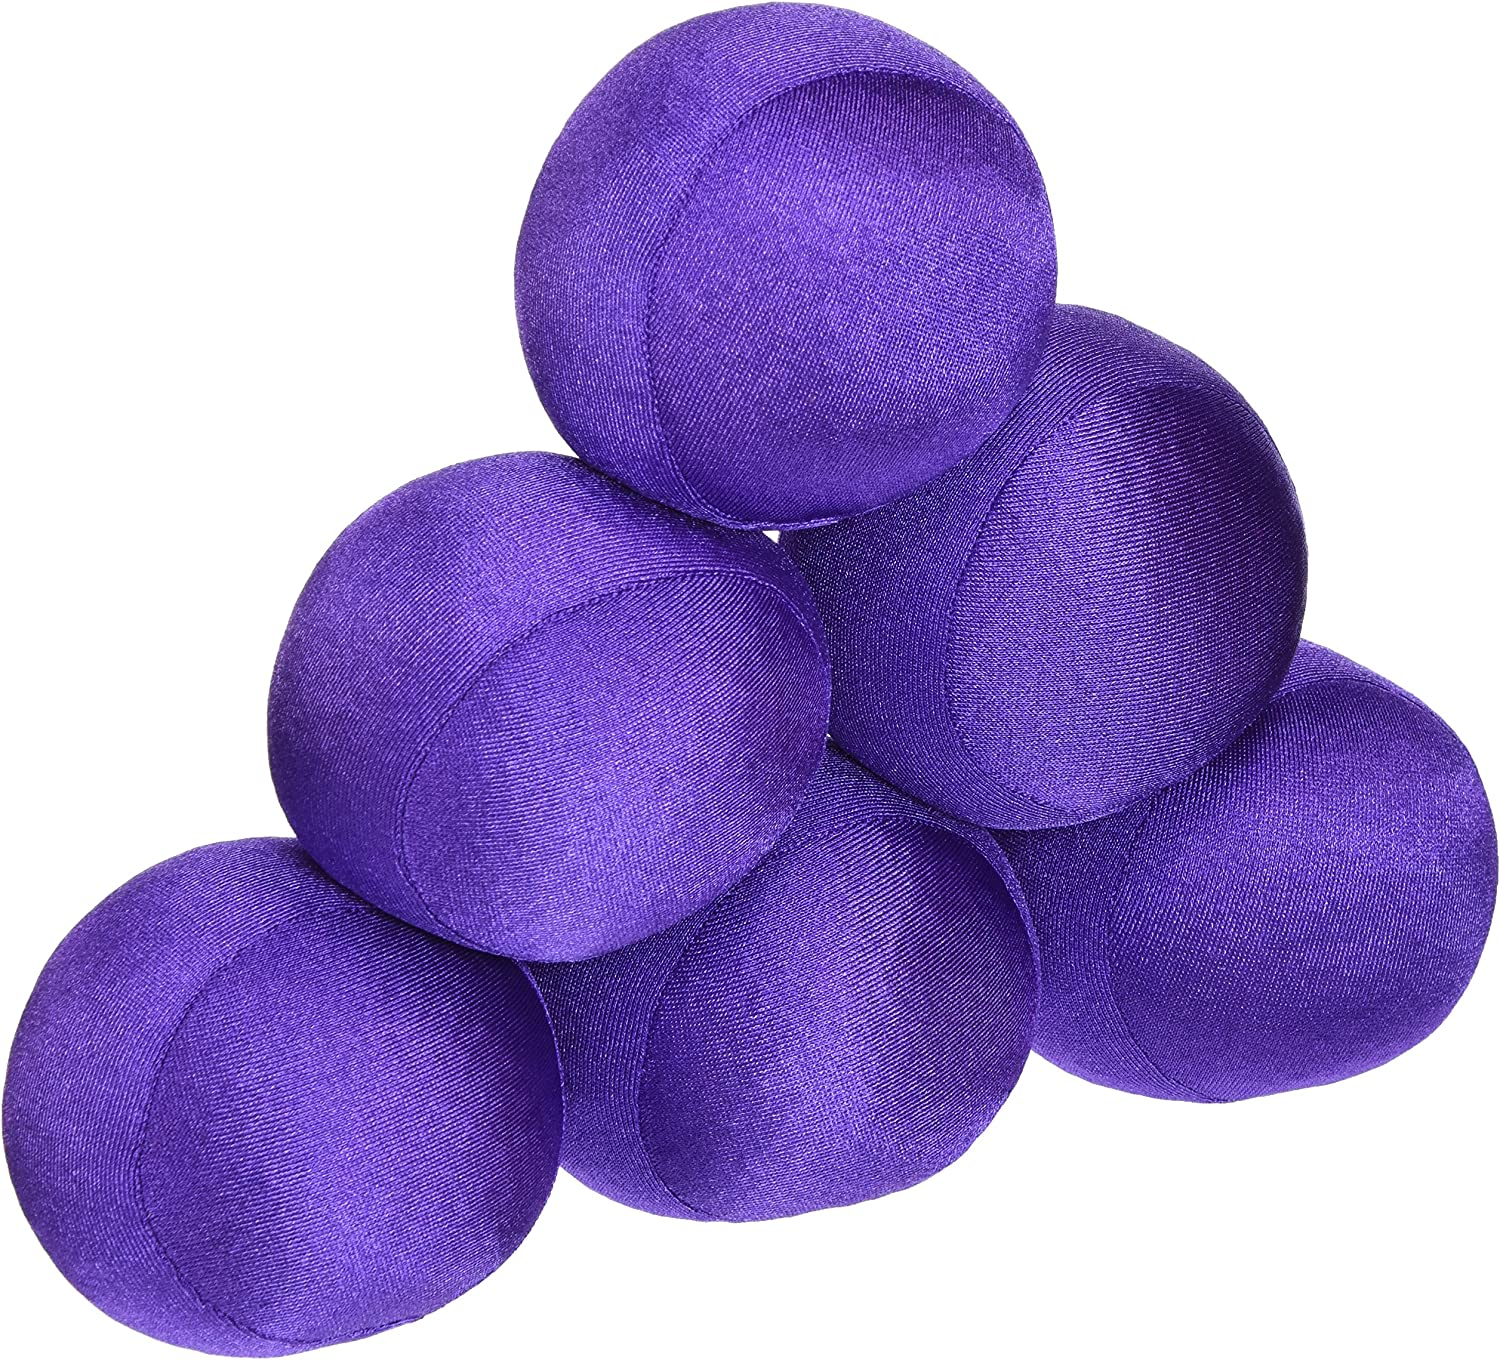 Lavender Scented Stress Balls Super popular specialty store for - Same day shipping and Pu Relief Anxiety